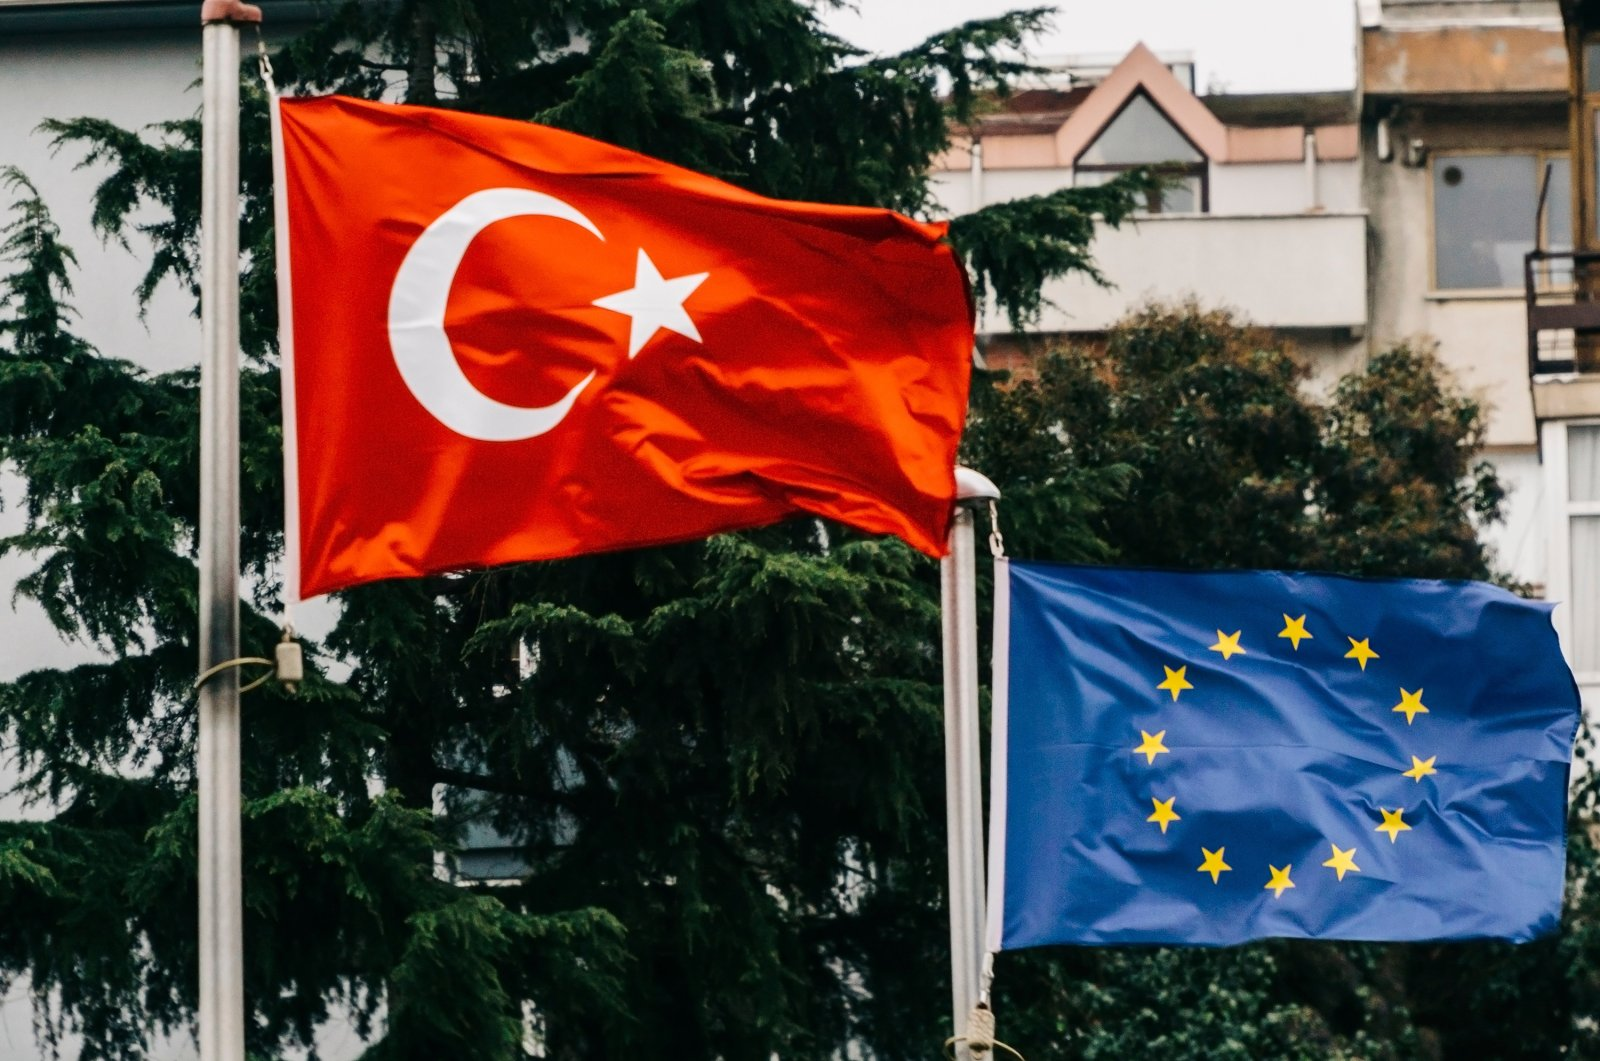 The flags of Turkey and the European Union wave in front of a building in the Etiler neighborhood of Beşiktaş district, Istanbul, Turkey, March 21, 2019. (Shutterstock Photo)